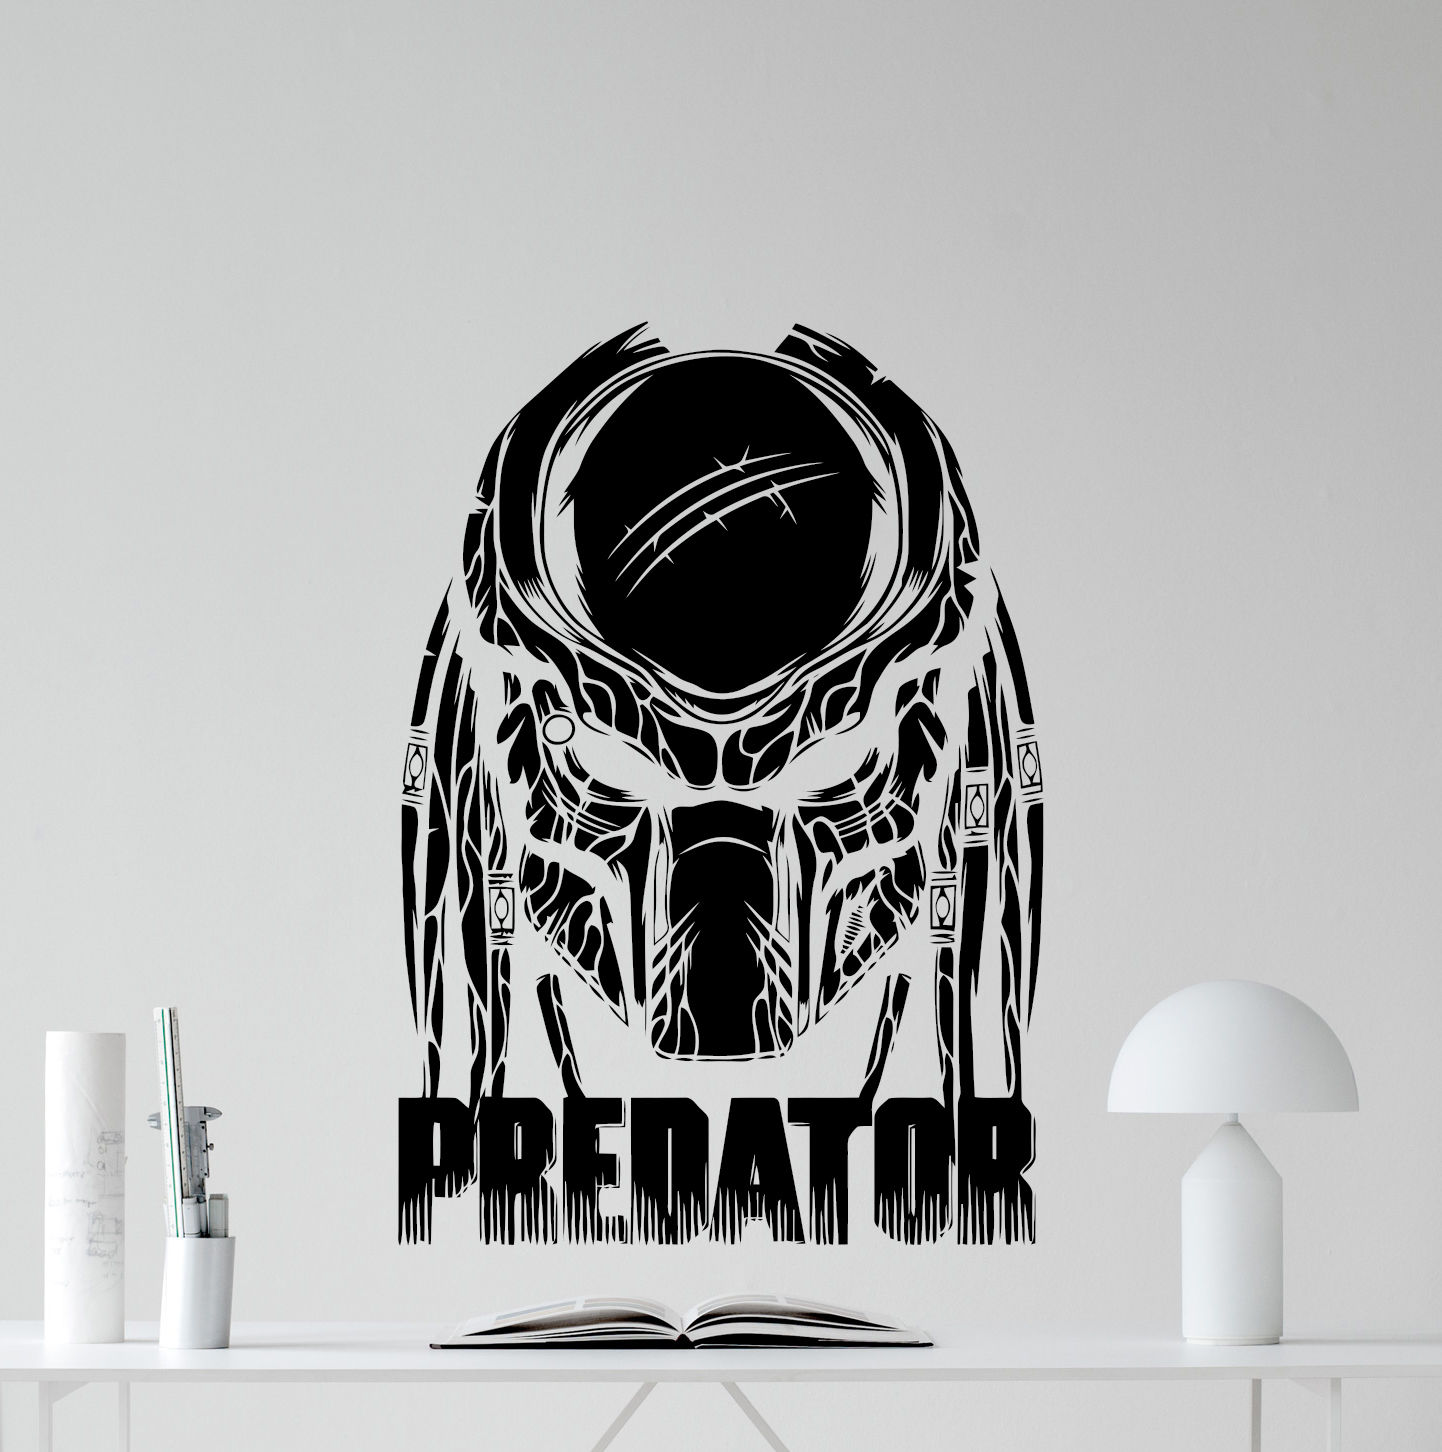 Predator film superhero vinyl dinding decal stiker anak art decor mural e579 di wall stickers dari rumah taman aliexpress com alibaba group